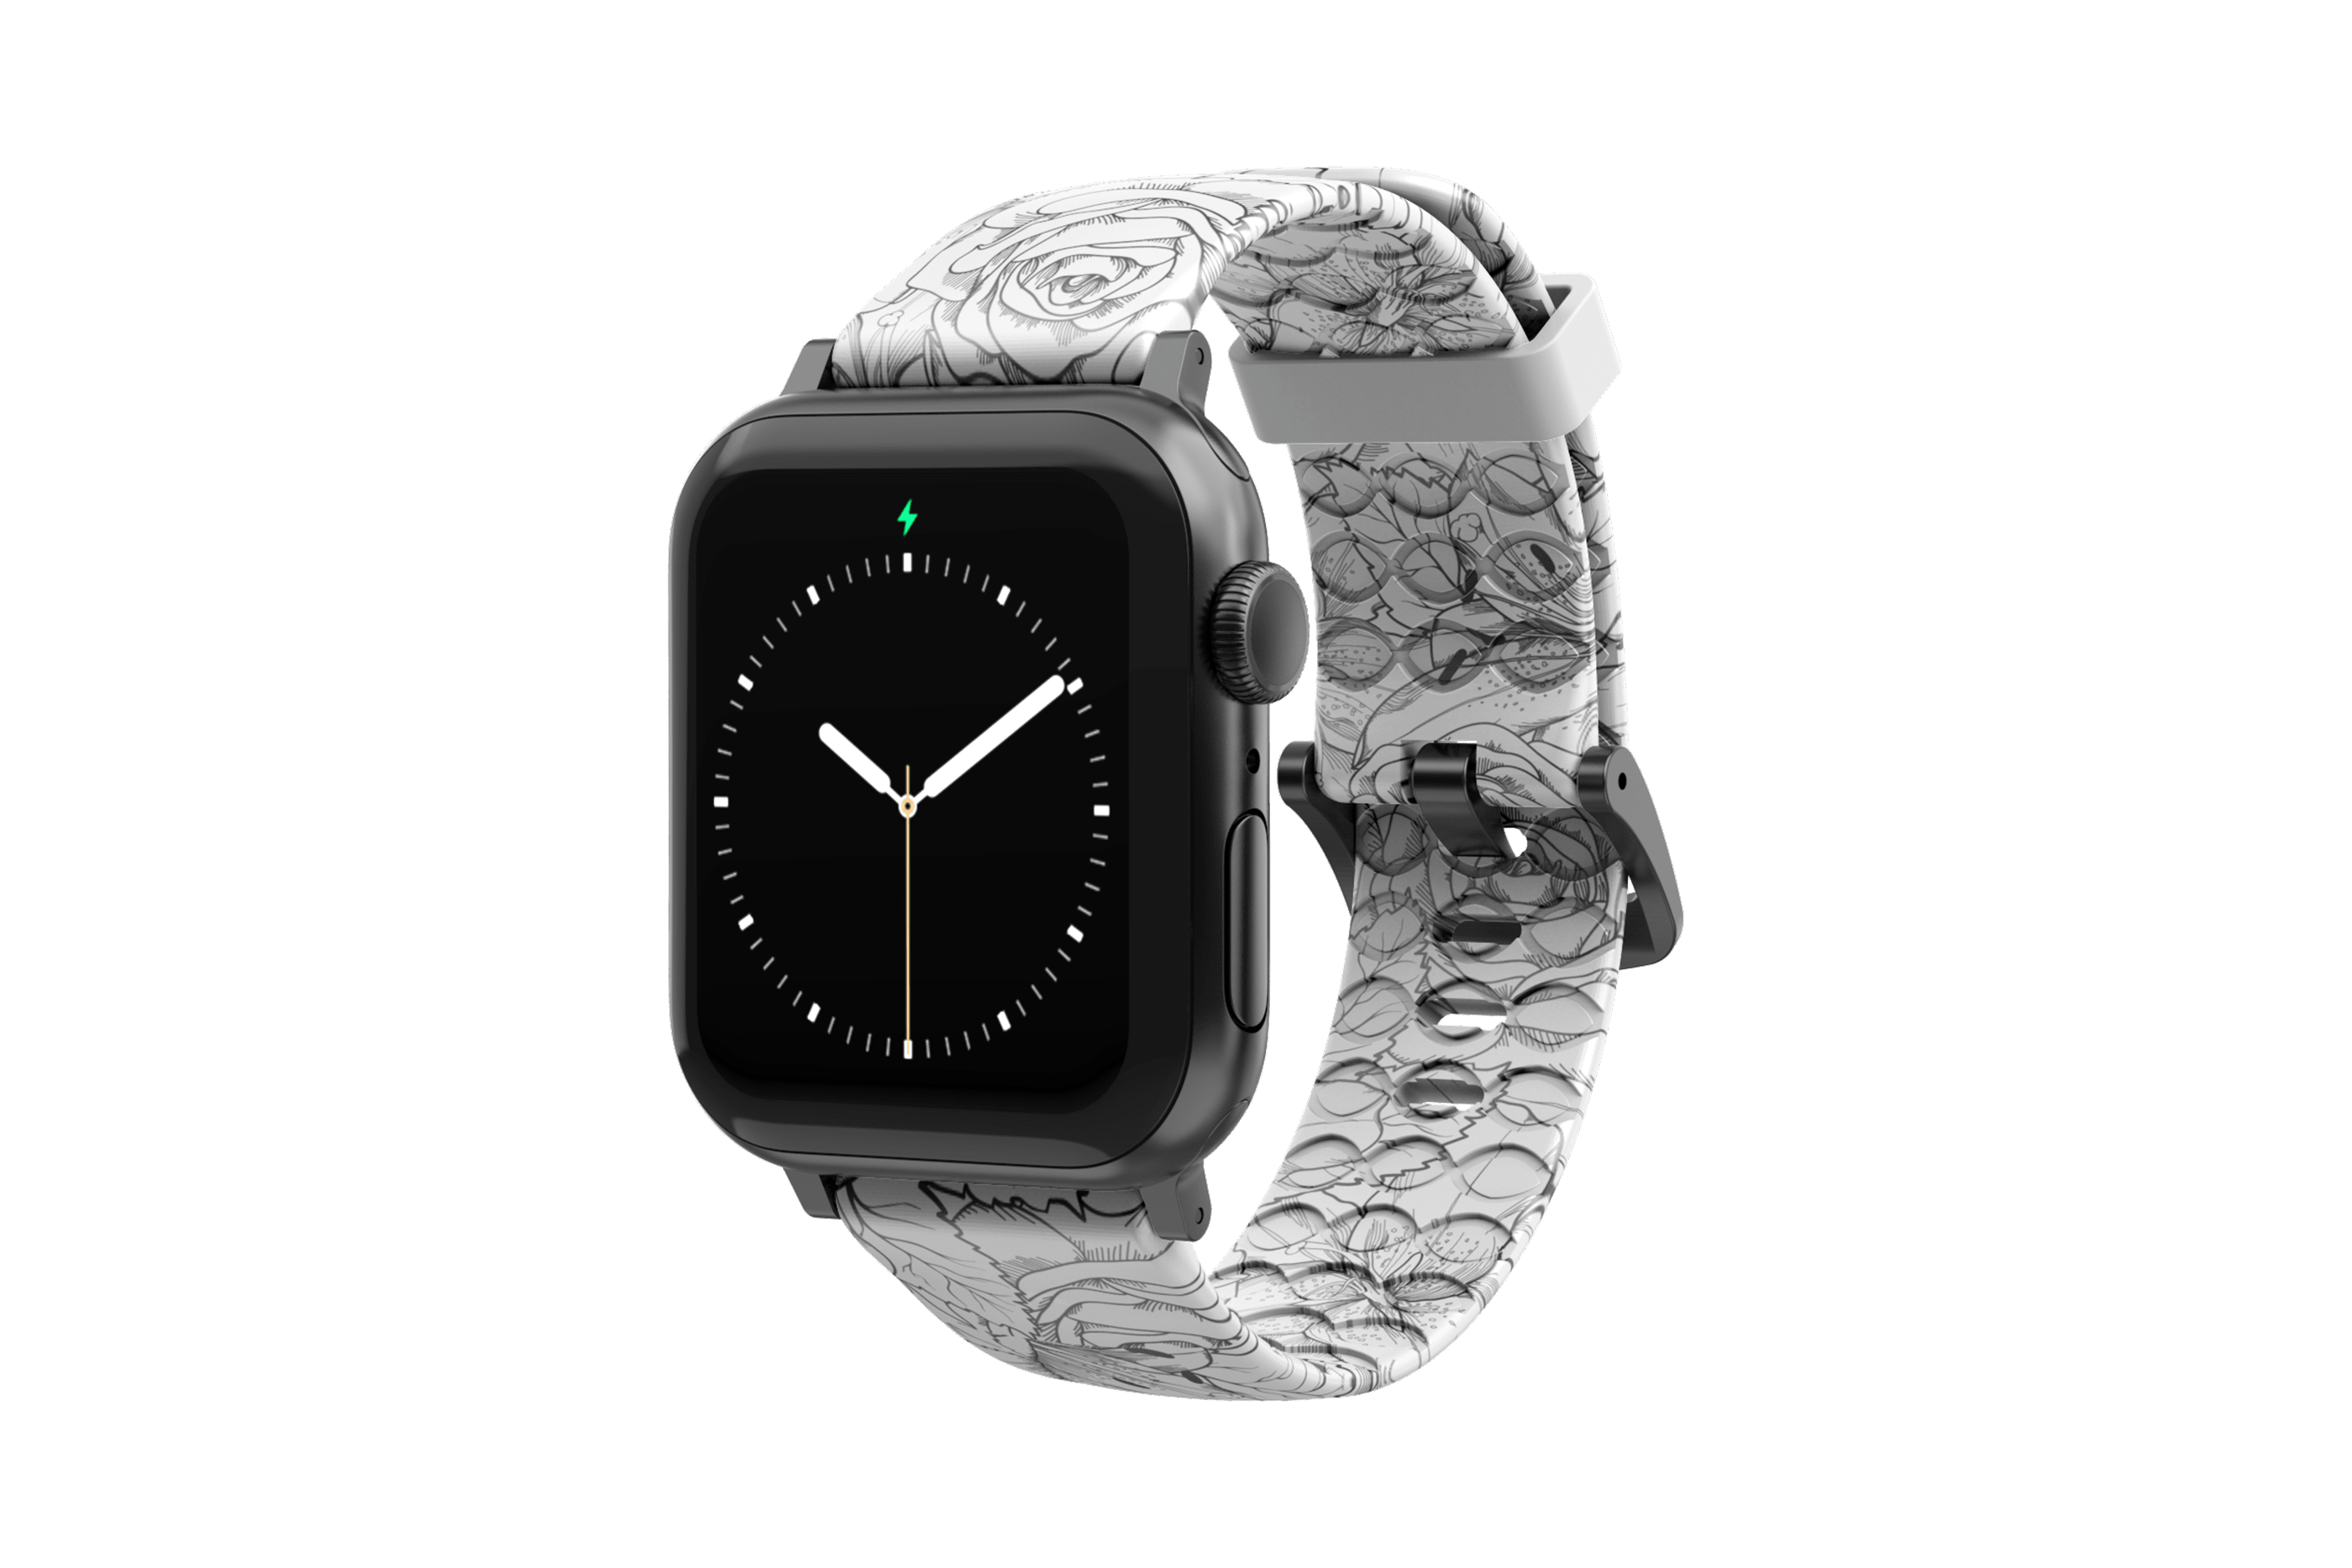 Winter Rose Apple Watch Band with gray hardware viewed front on